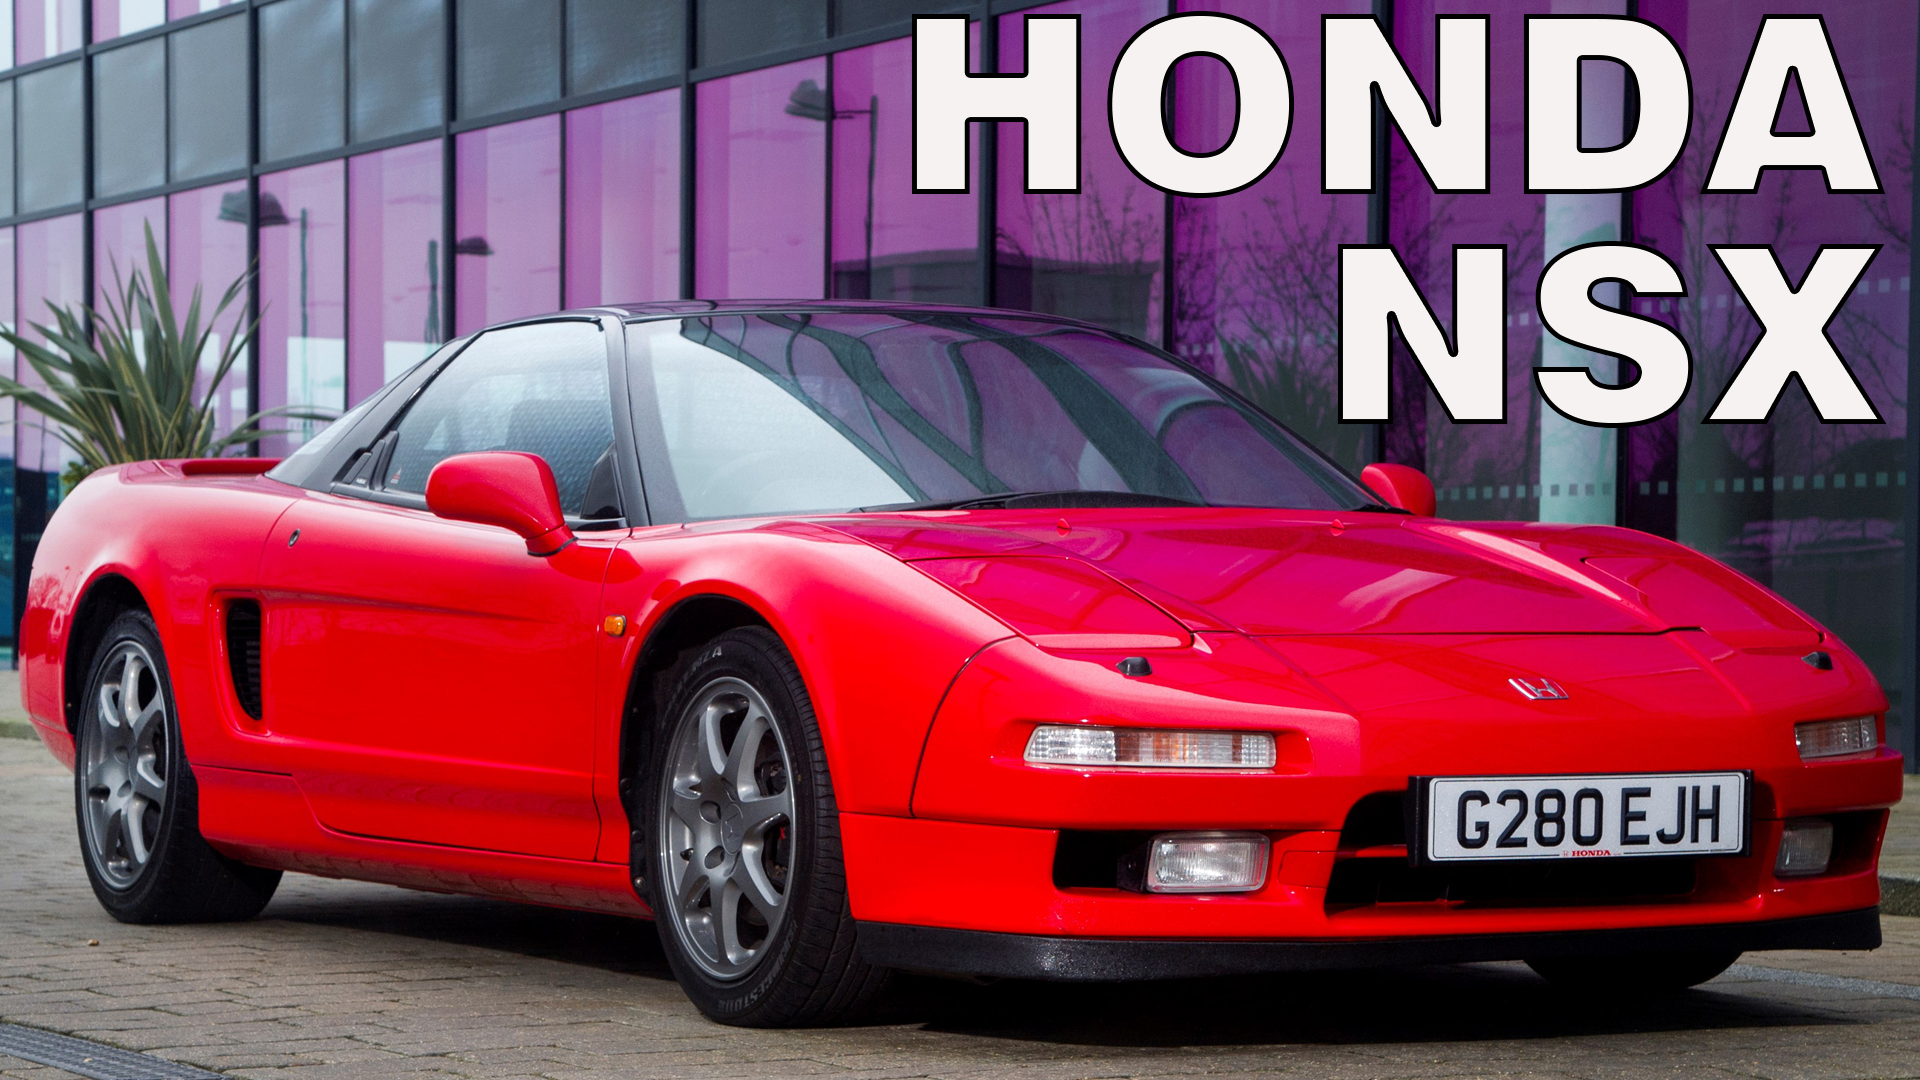 Honda Nsx Facts